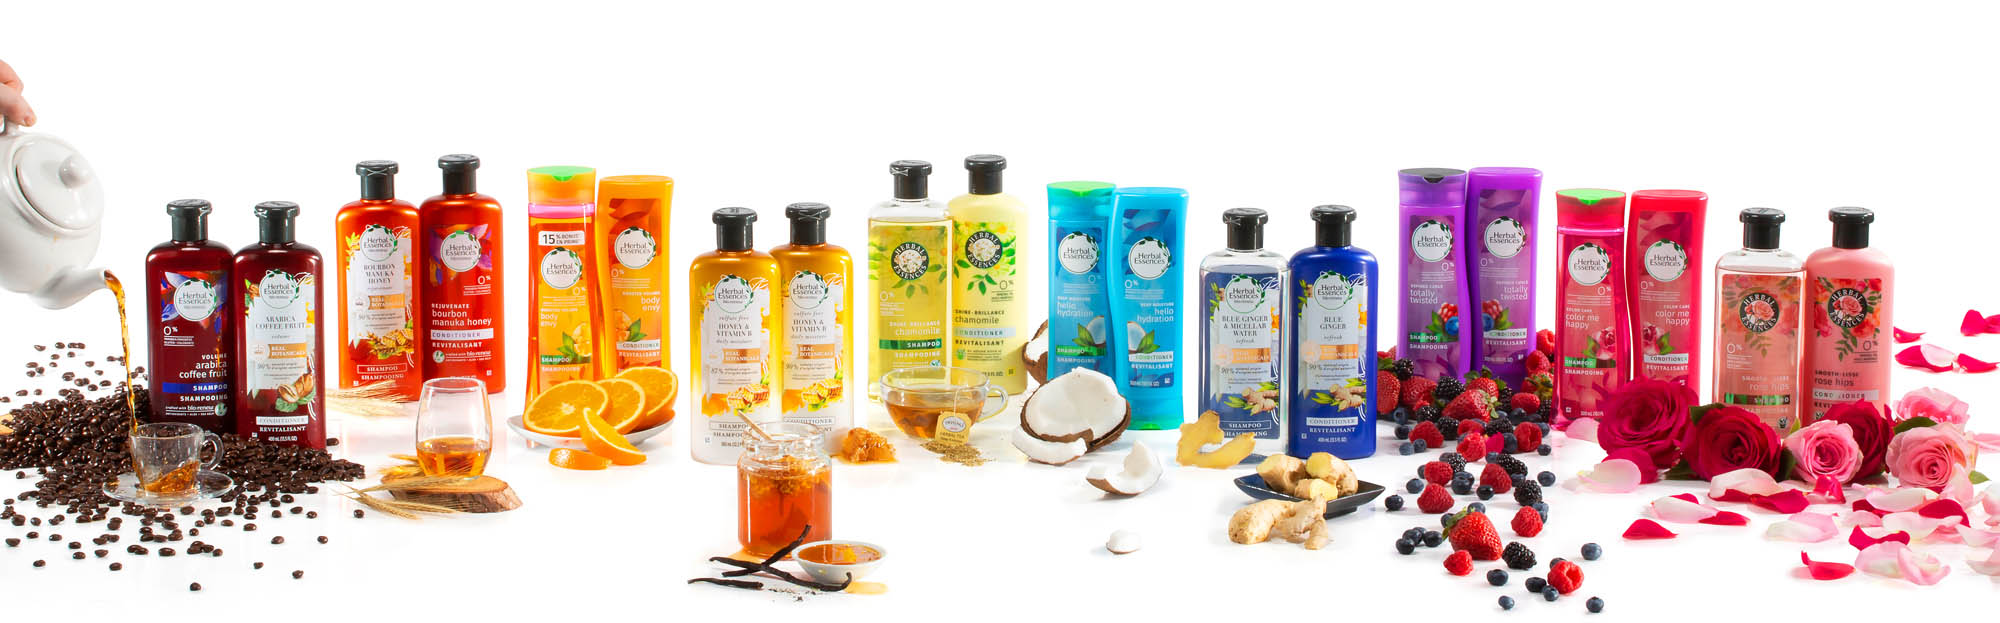 Herbal essence family with scent cues on white - p&g product photography